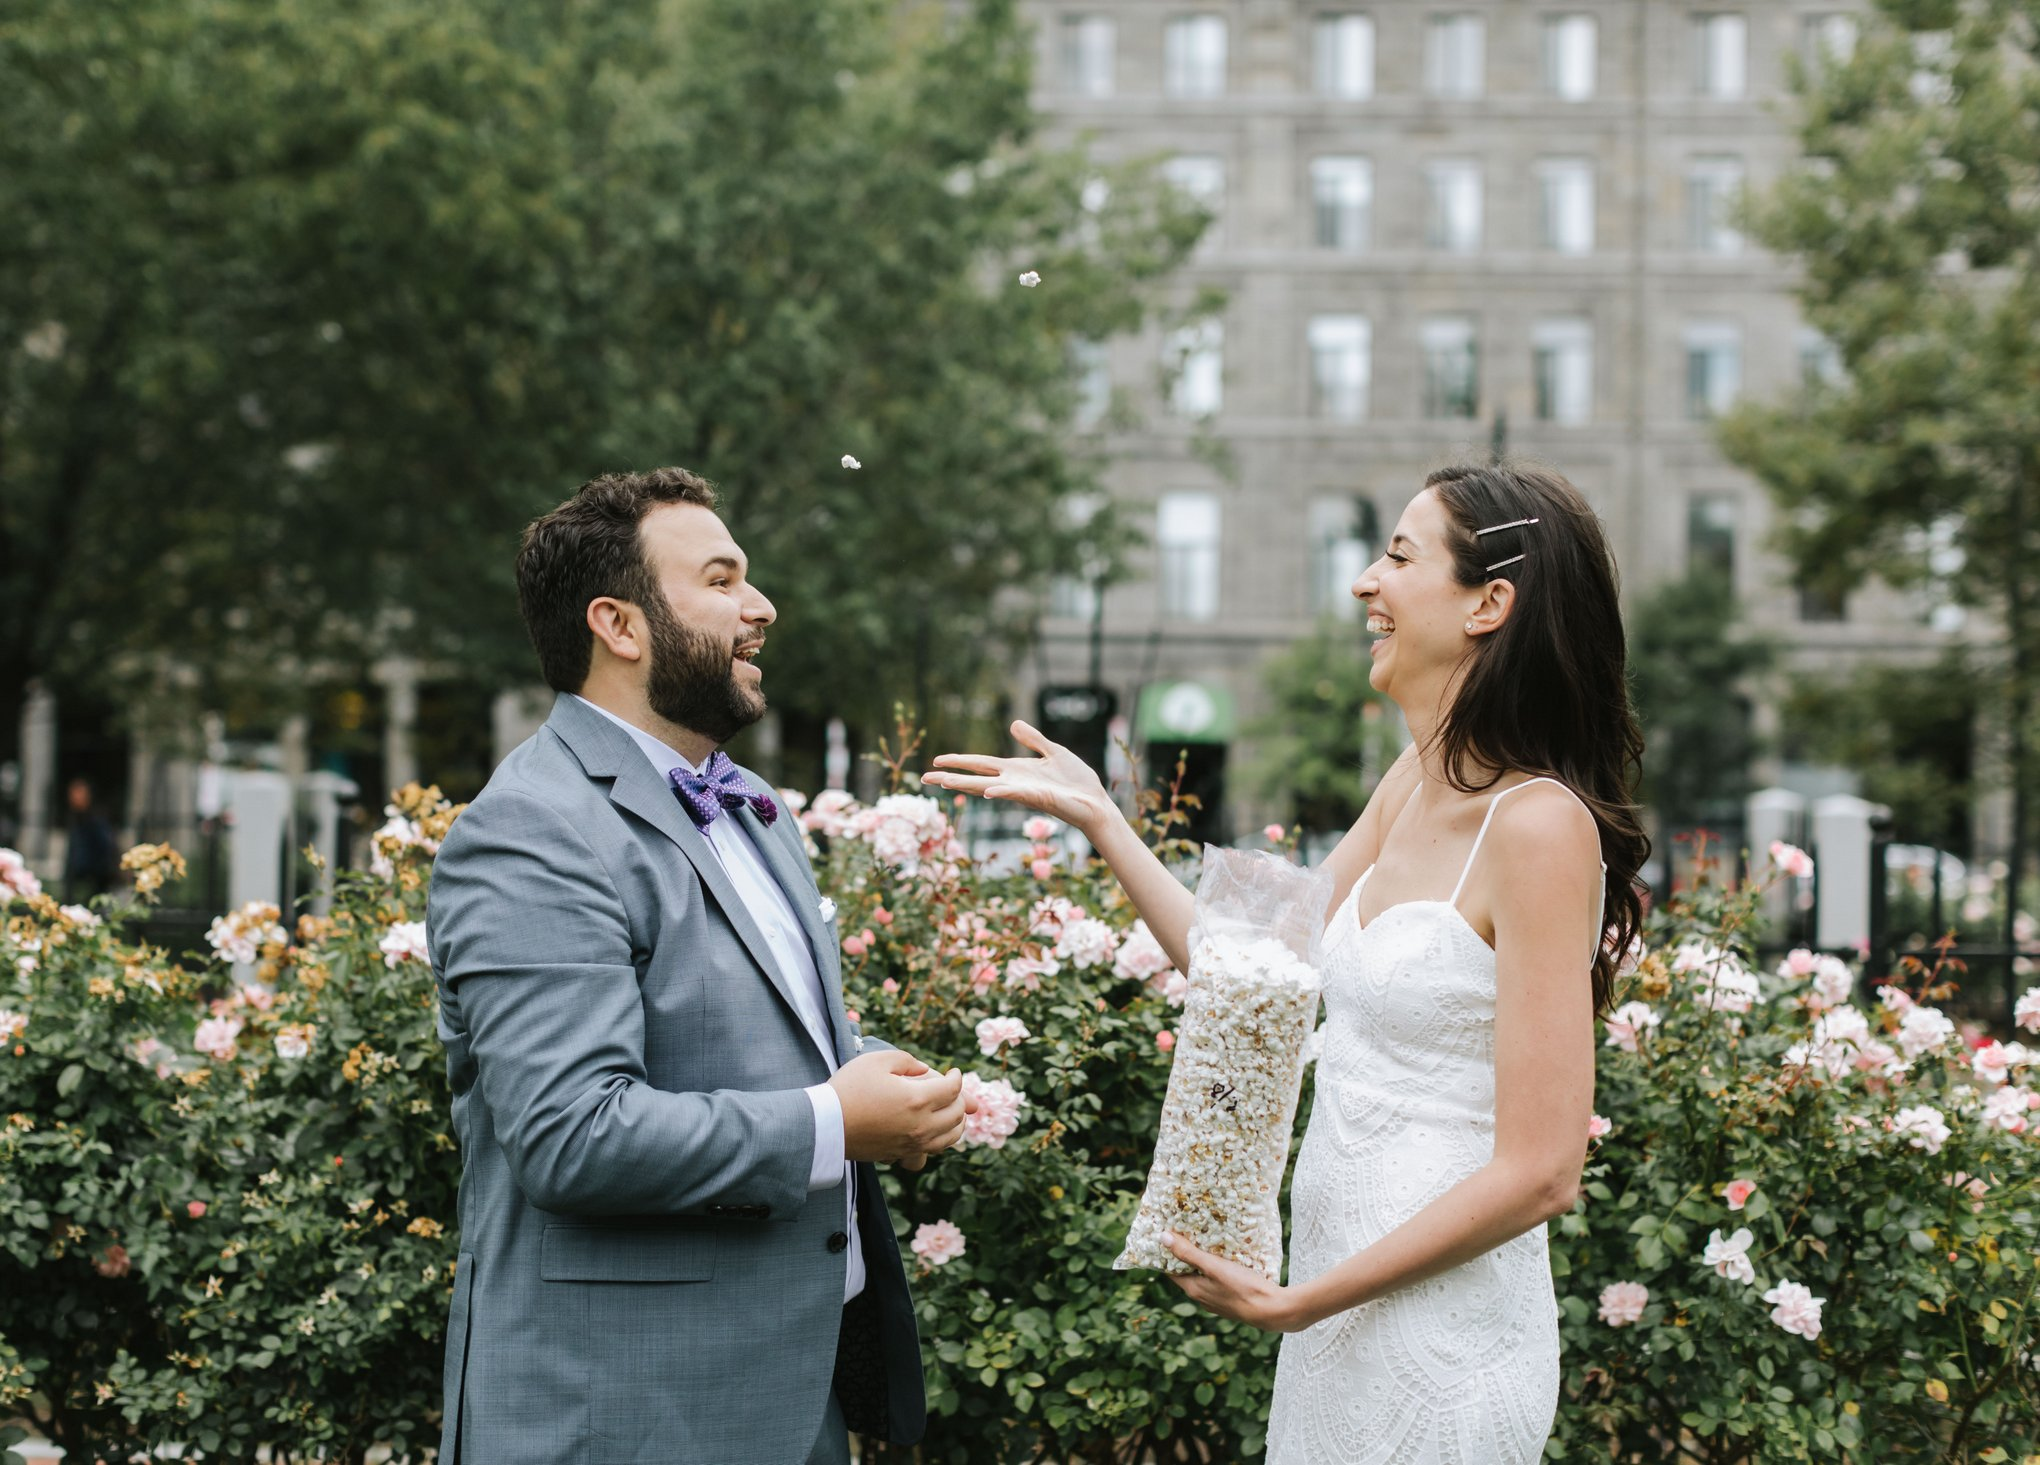 Boston_City_Hall_Wedding_North-End-Mikes-Pastry-22.jpg